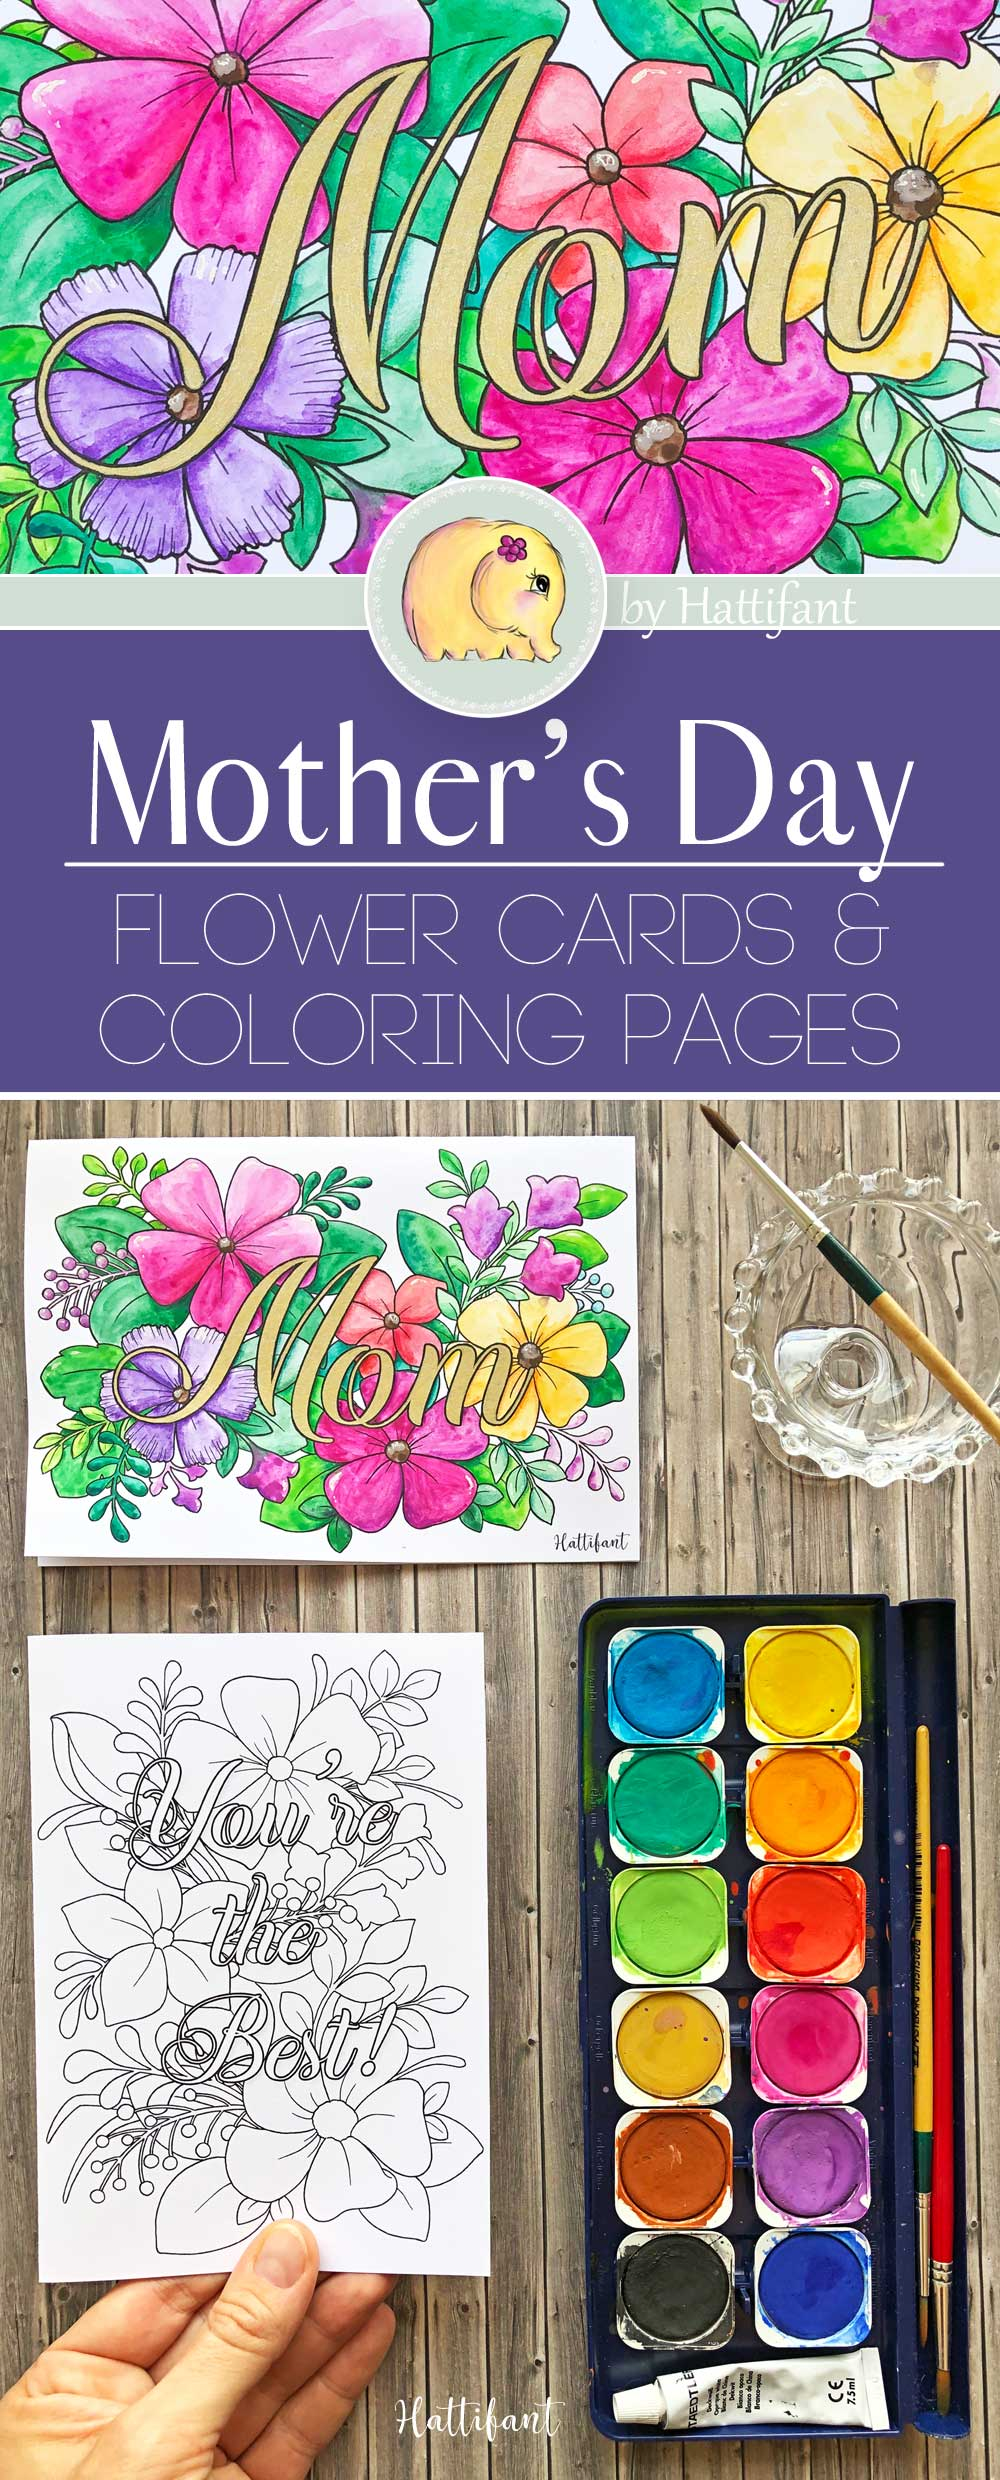 Hattifant's Mother's Day Flower Cards and Coloring Pages Pin